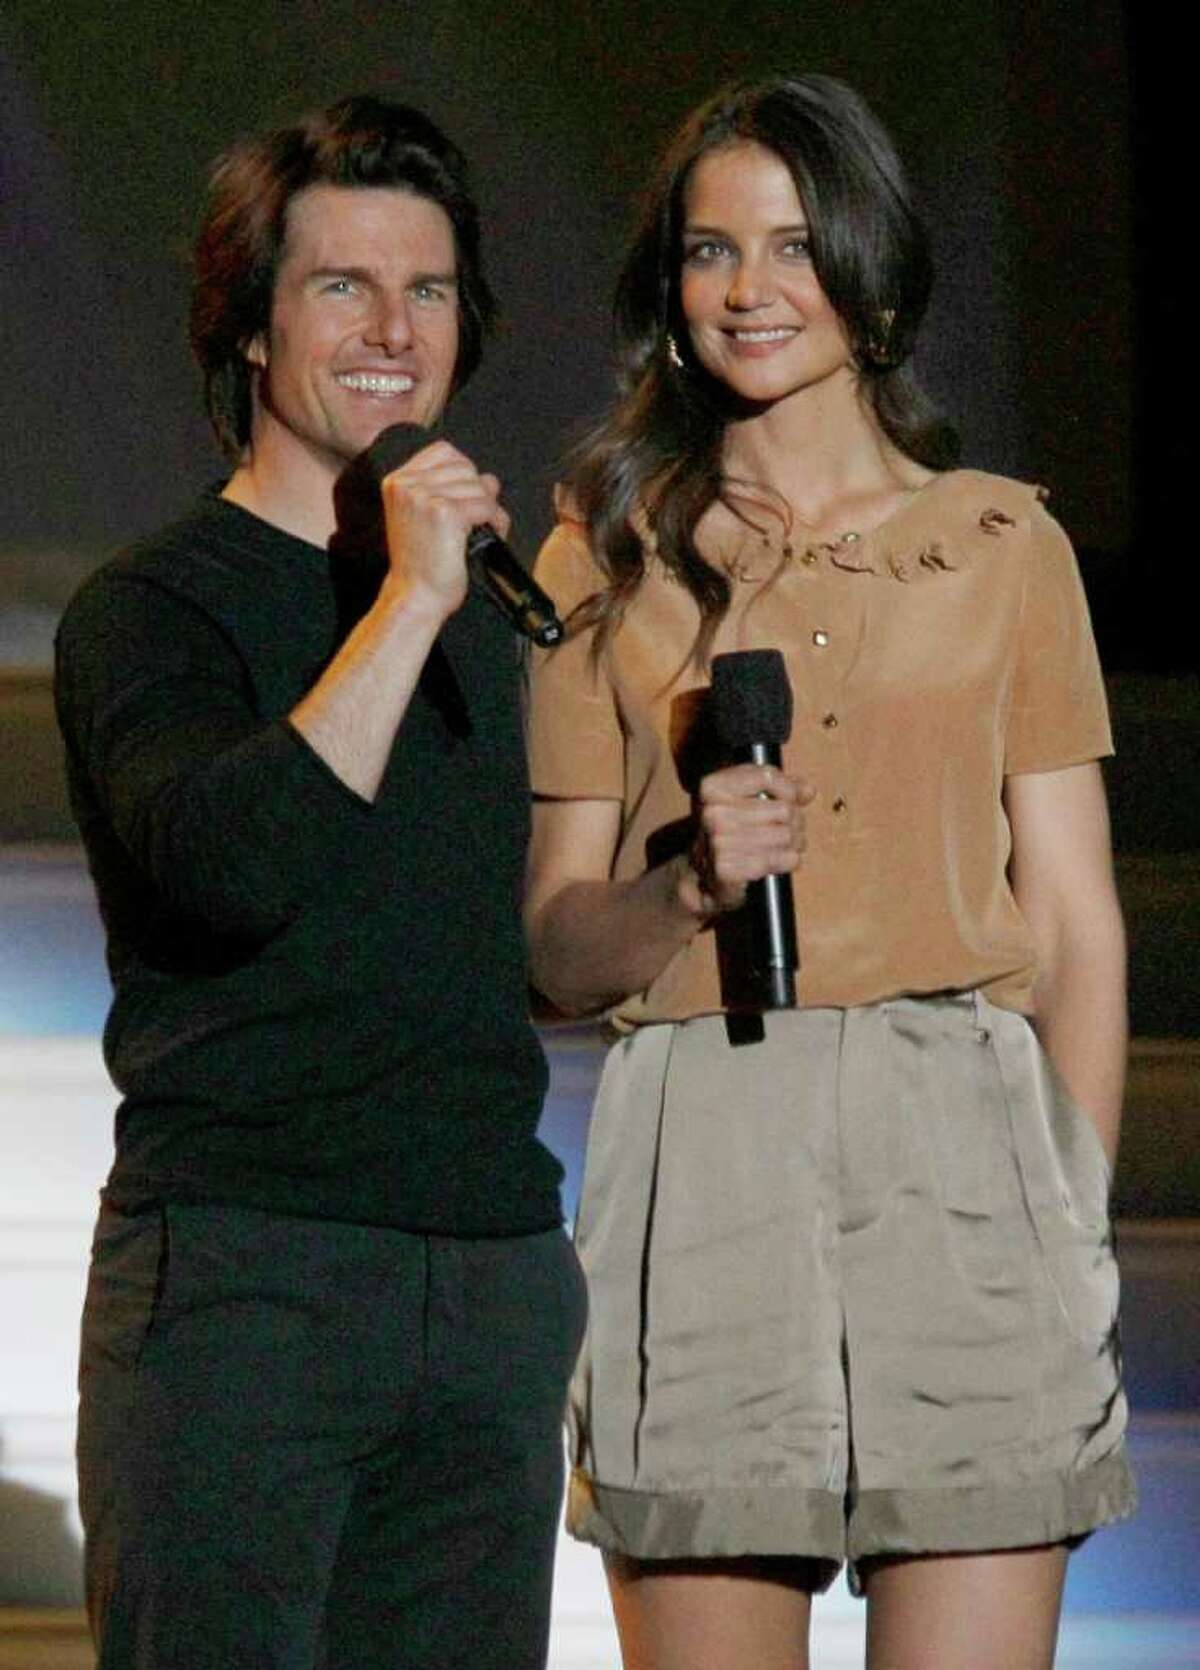 Tom Cruise and Katie Holmes appear together during a star-studded double-taping of